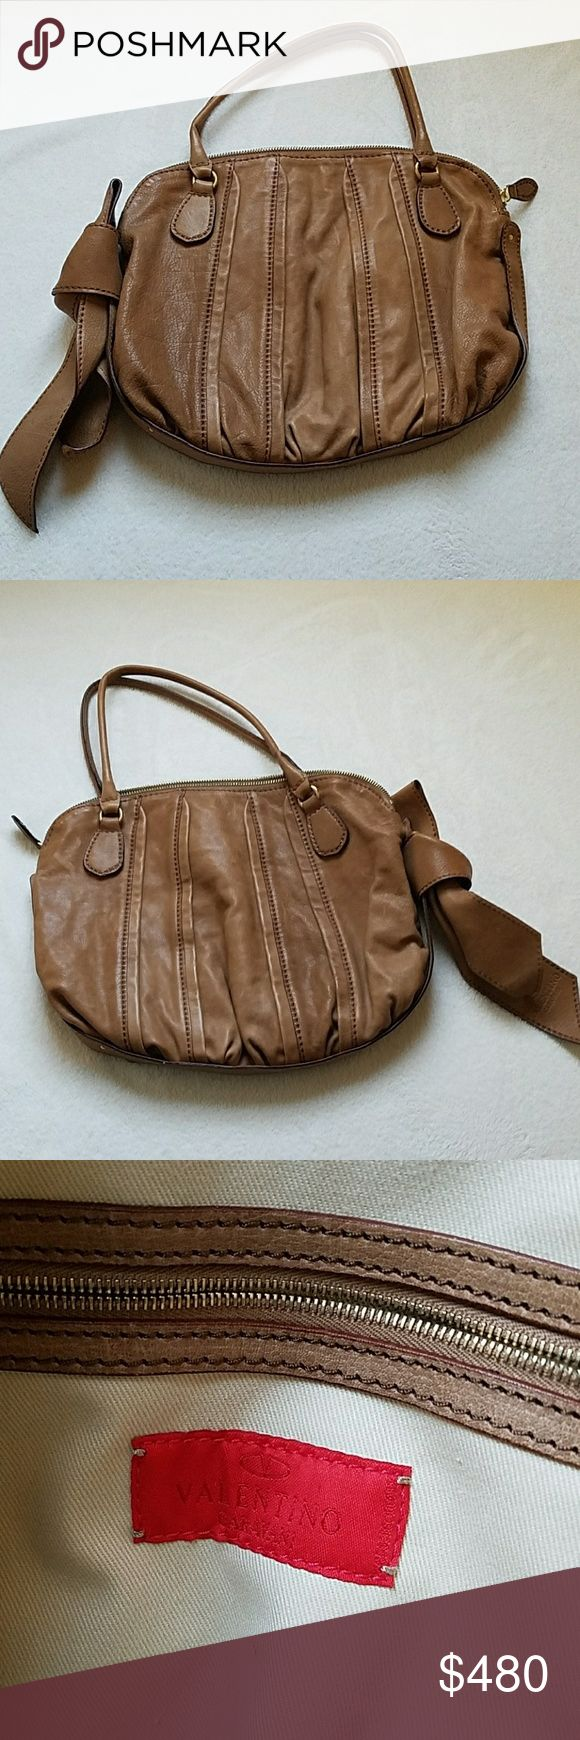 Valentino Garavani Tan Purse Discontinued Valentino Purse. Lightly used. One small stain on the inside from an uncapped pen. Valentino Bags Shoulder Bags #valentinopurse